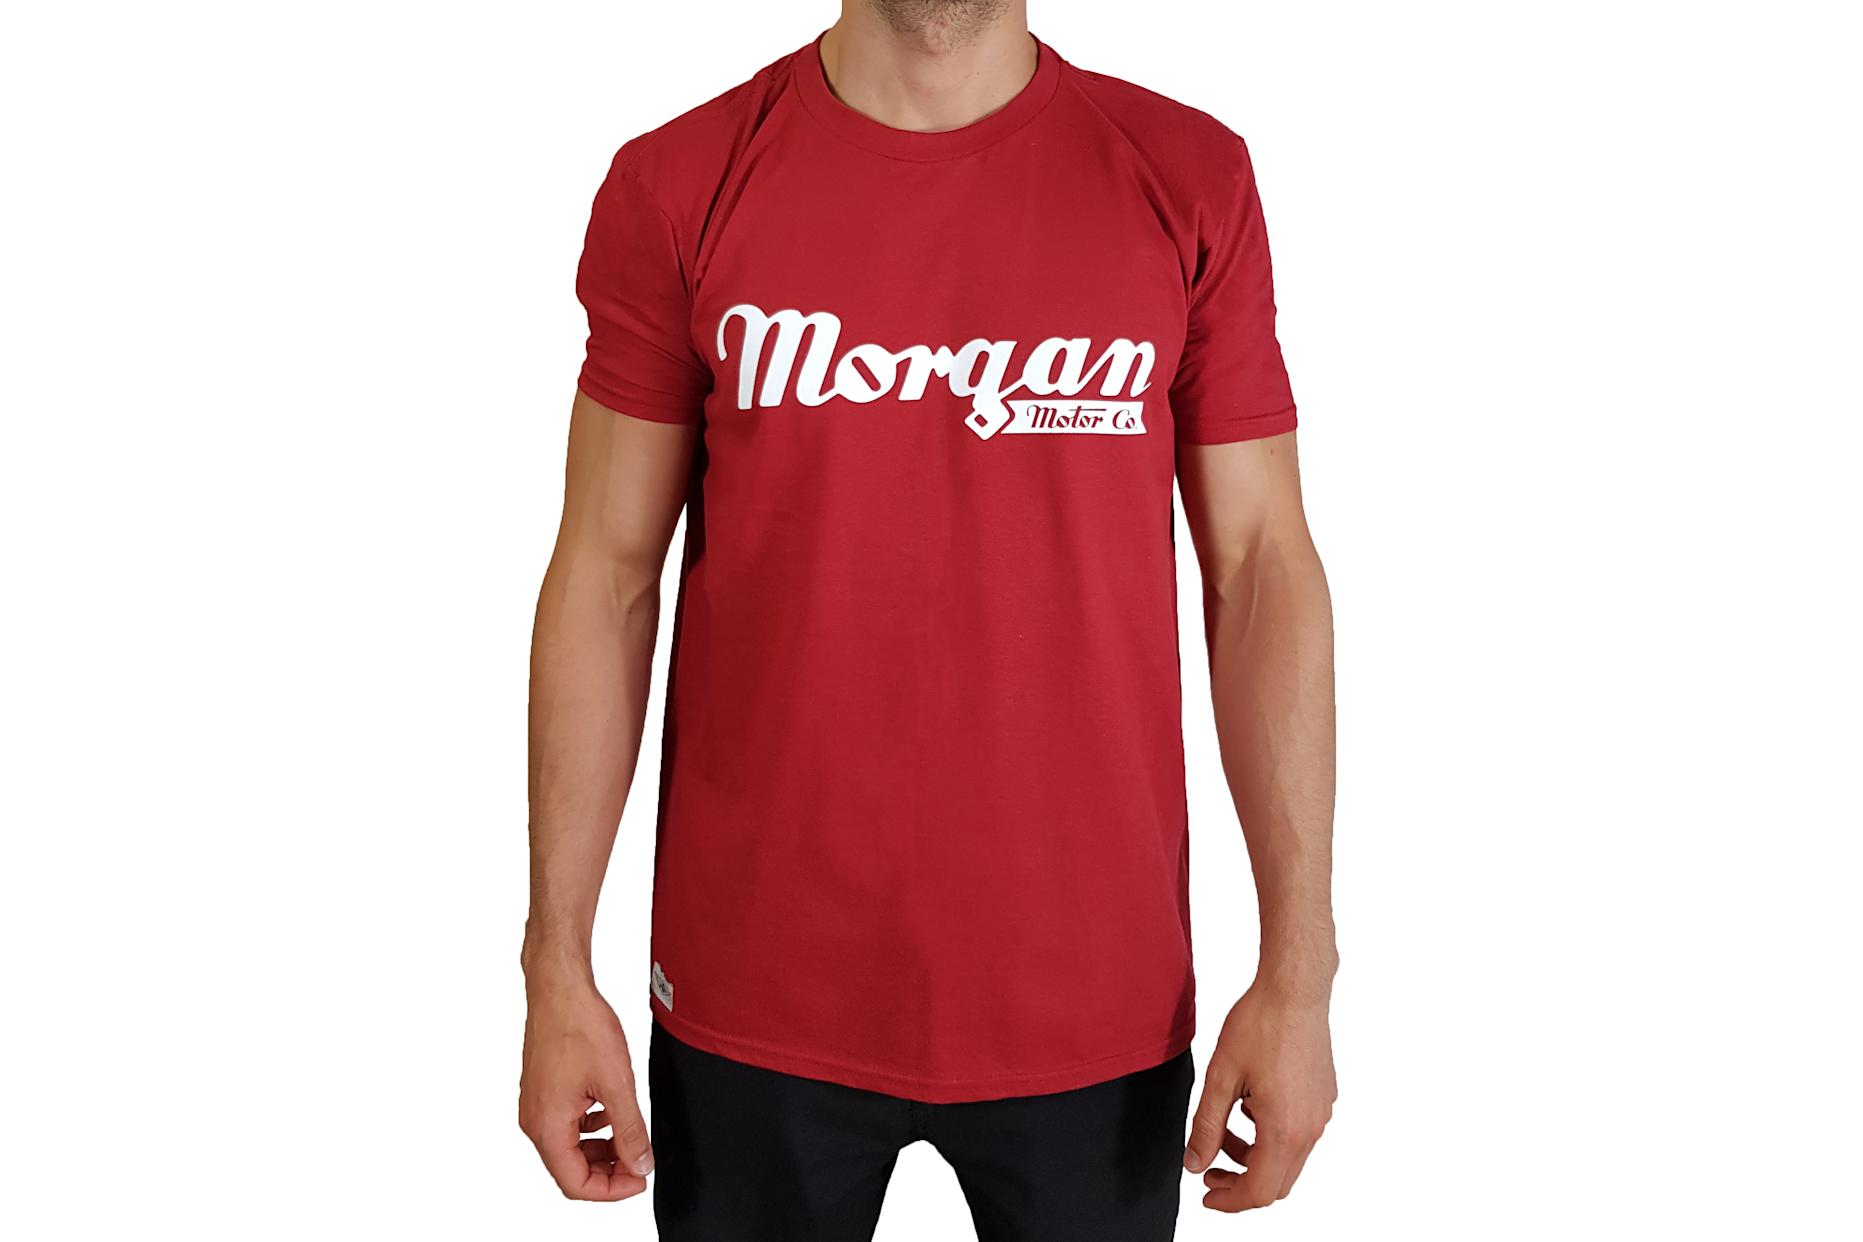 Morgan's retro t-shirt design will appeal to many